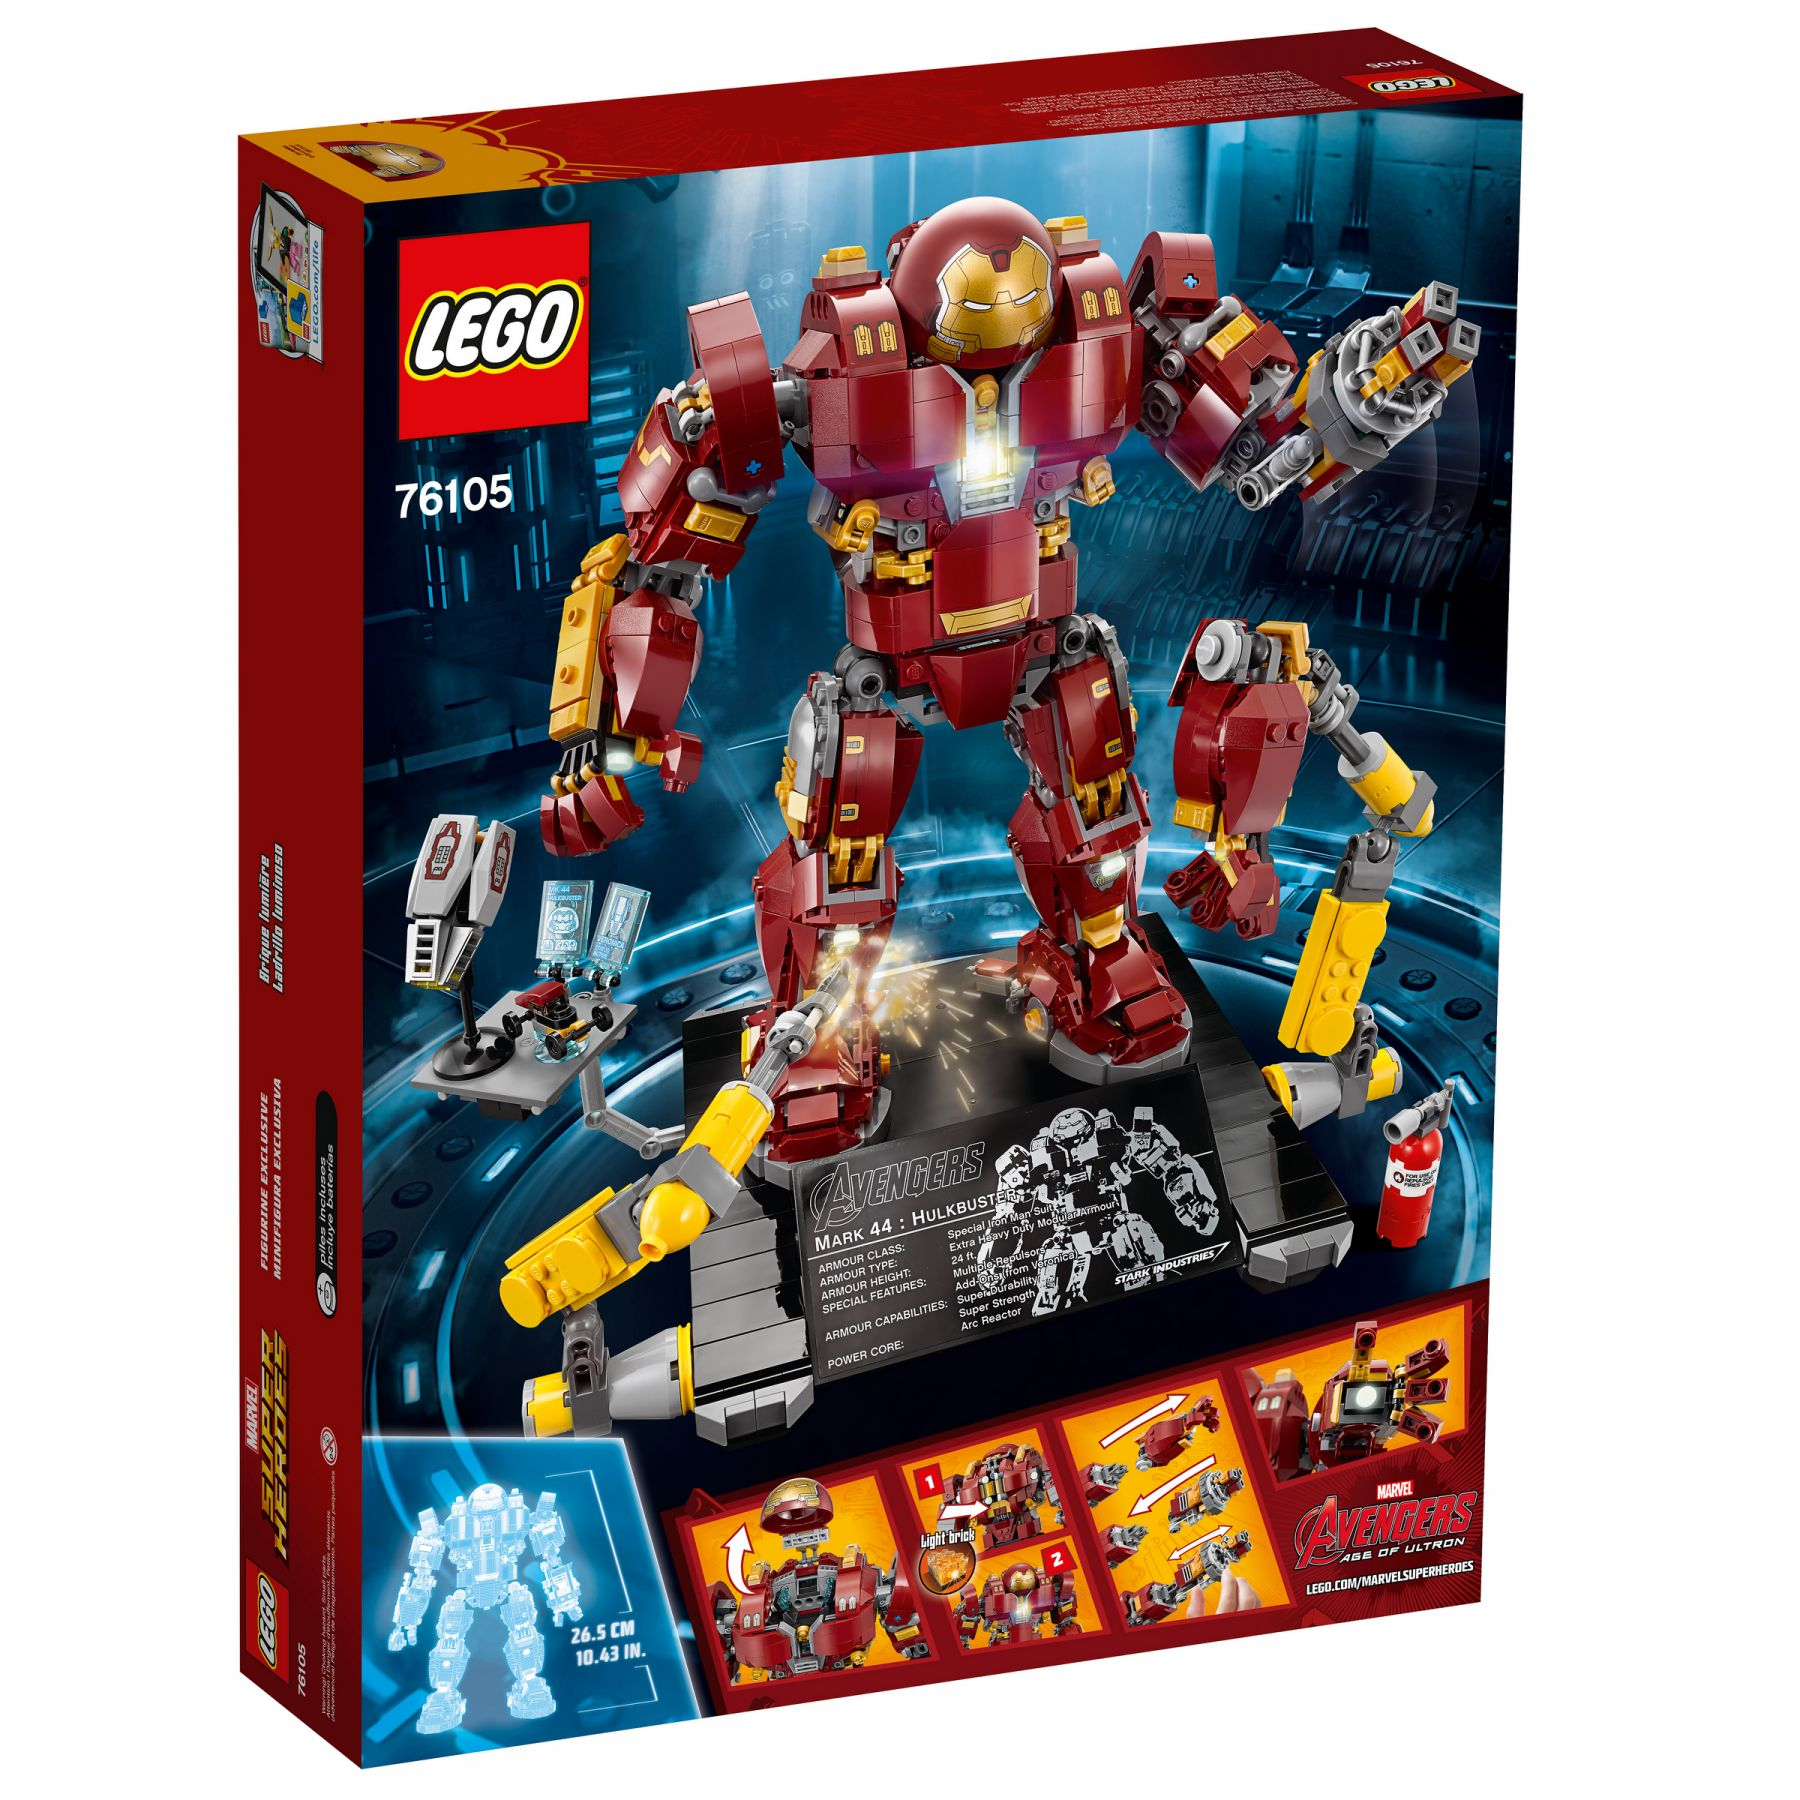 LEGO Super Heroes 76105 Marvel Avengers: Infinity War - The Hulkbuster: Ultron Edition LEGO_76105_alt12.jpg